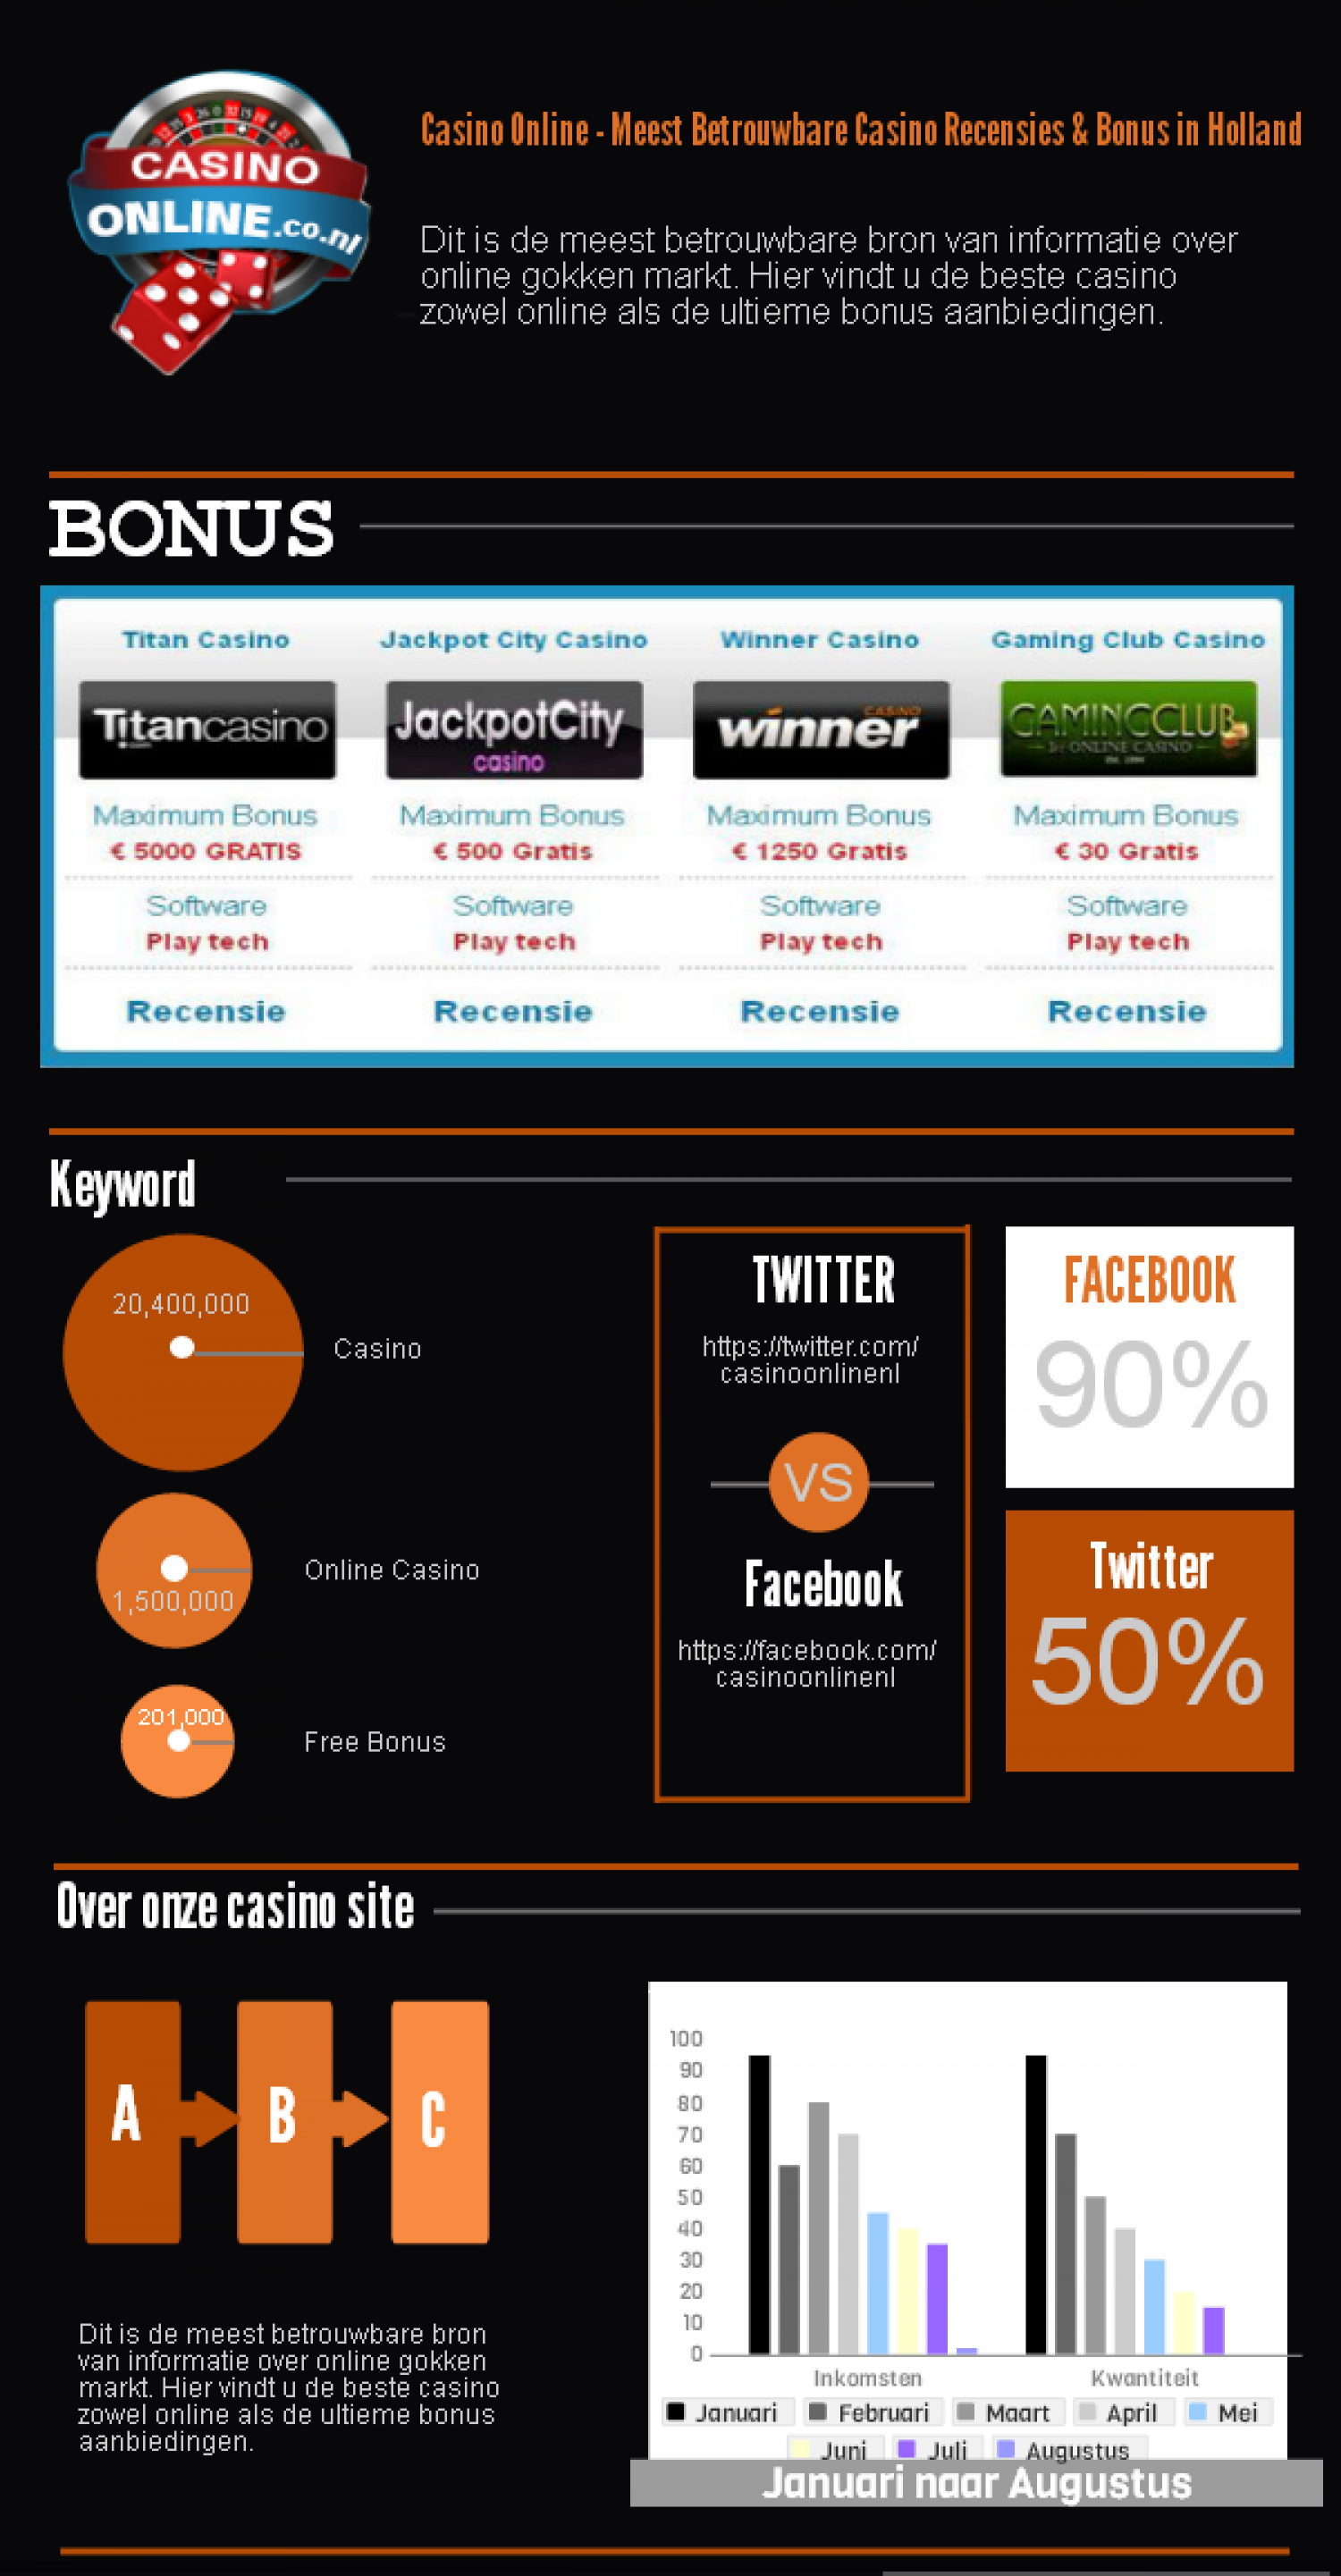 Casino Online - Meest Betrouwbare Casino Recensies & Bonus in Holland Infographic